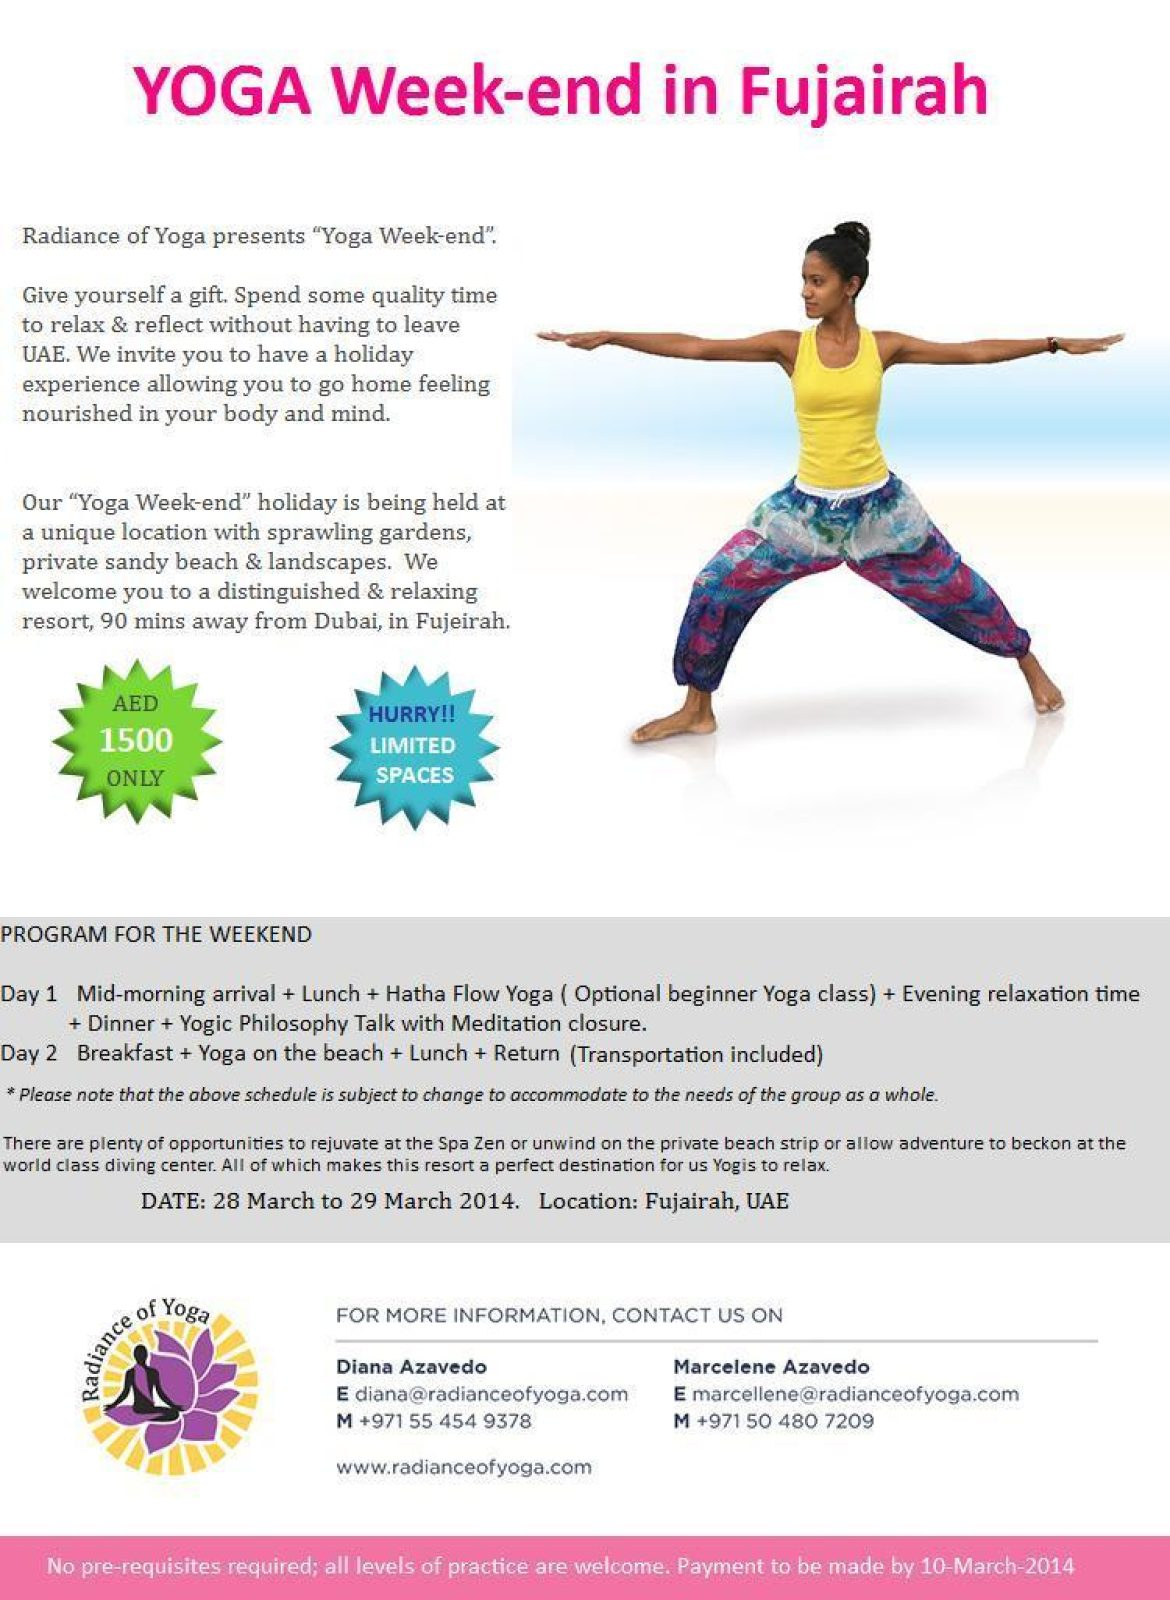 Yoga weekend in Fujairah – Welcome to Radiance of Yoga